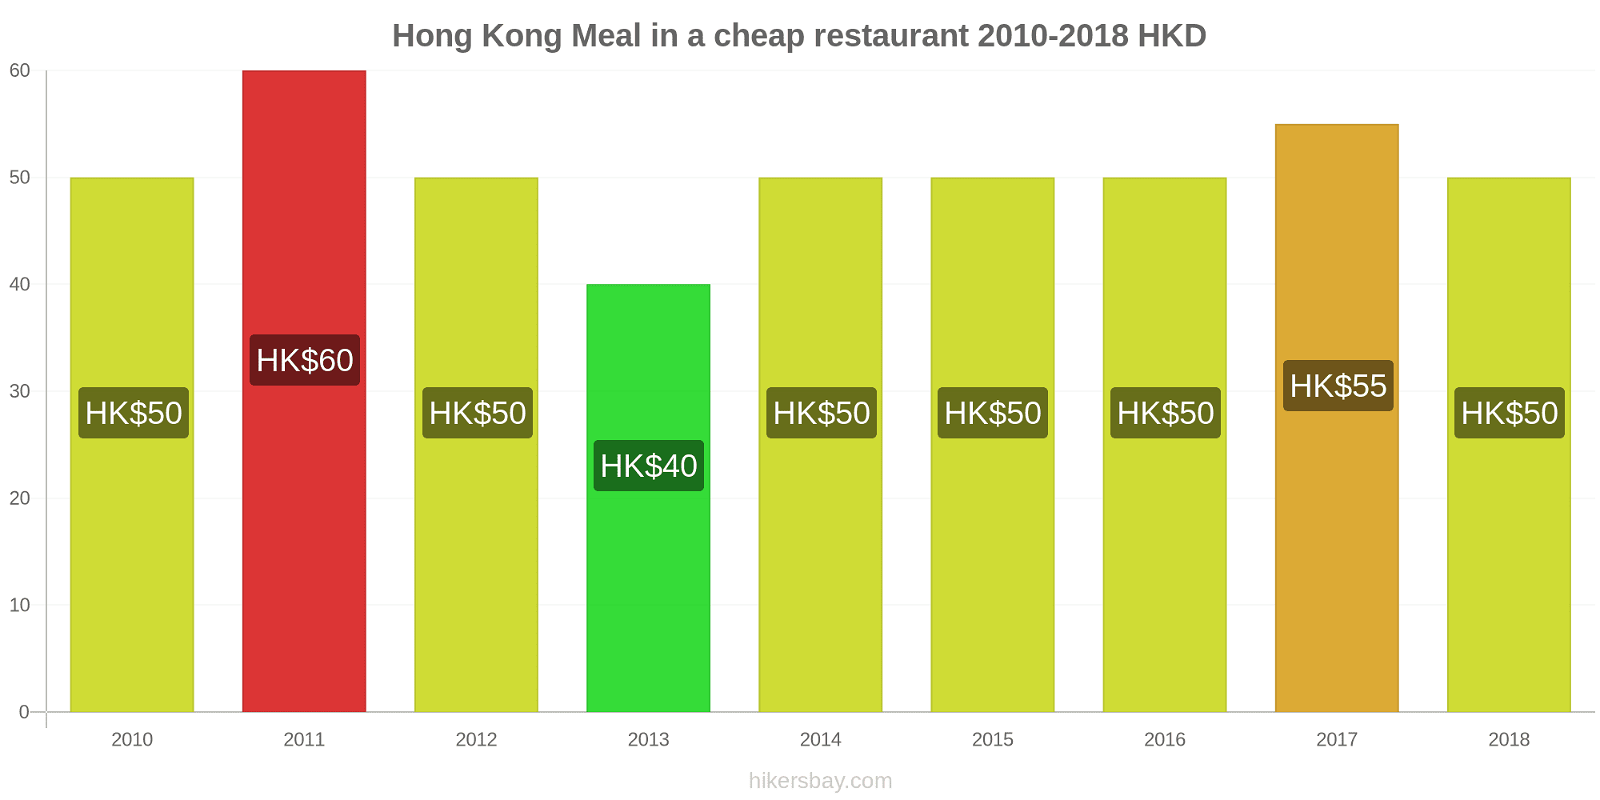 Hong Kong price changes Meal in a cheap restaurant hikersbay.com